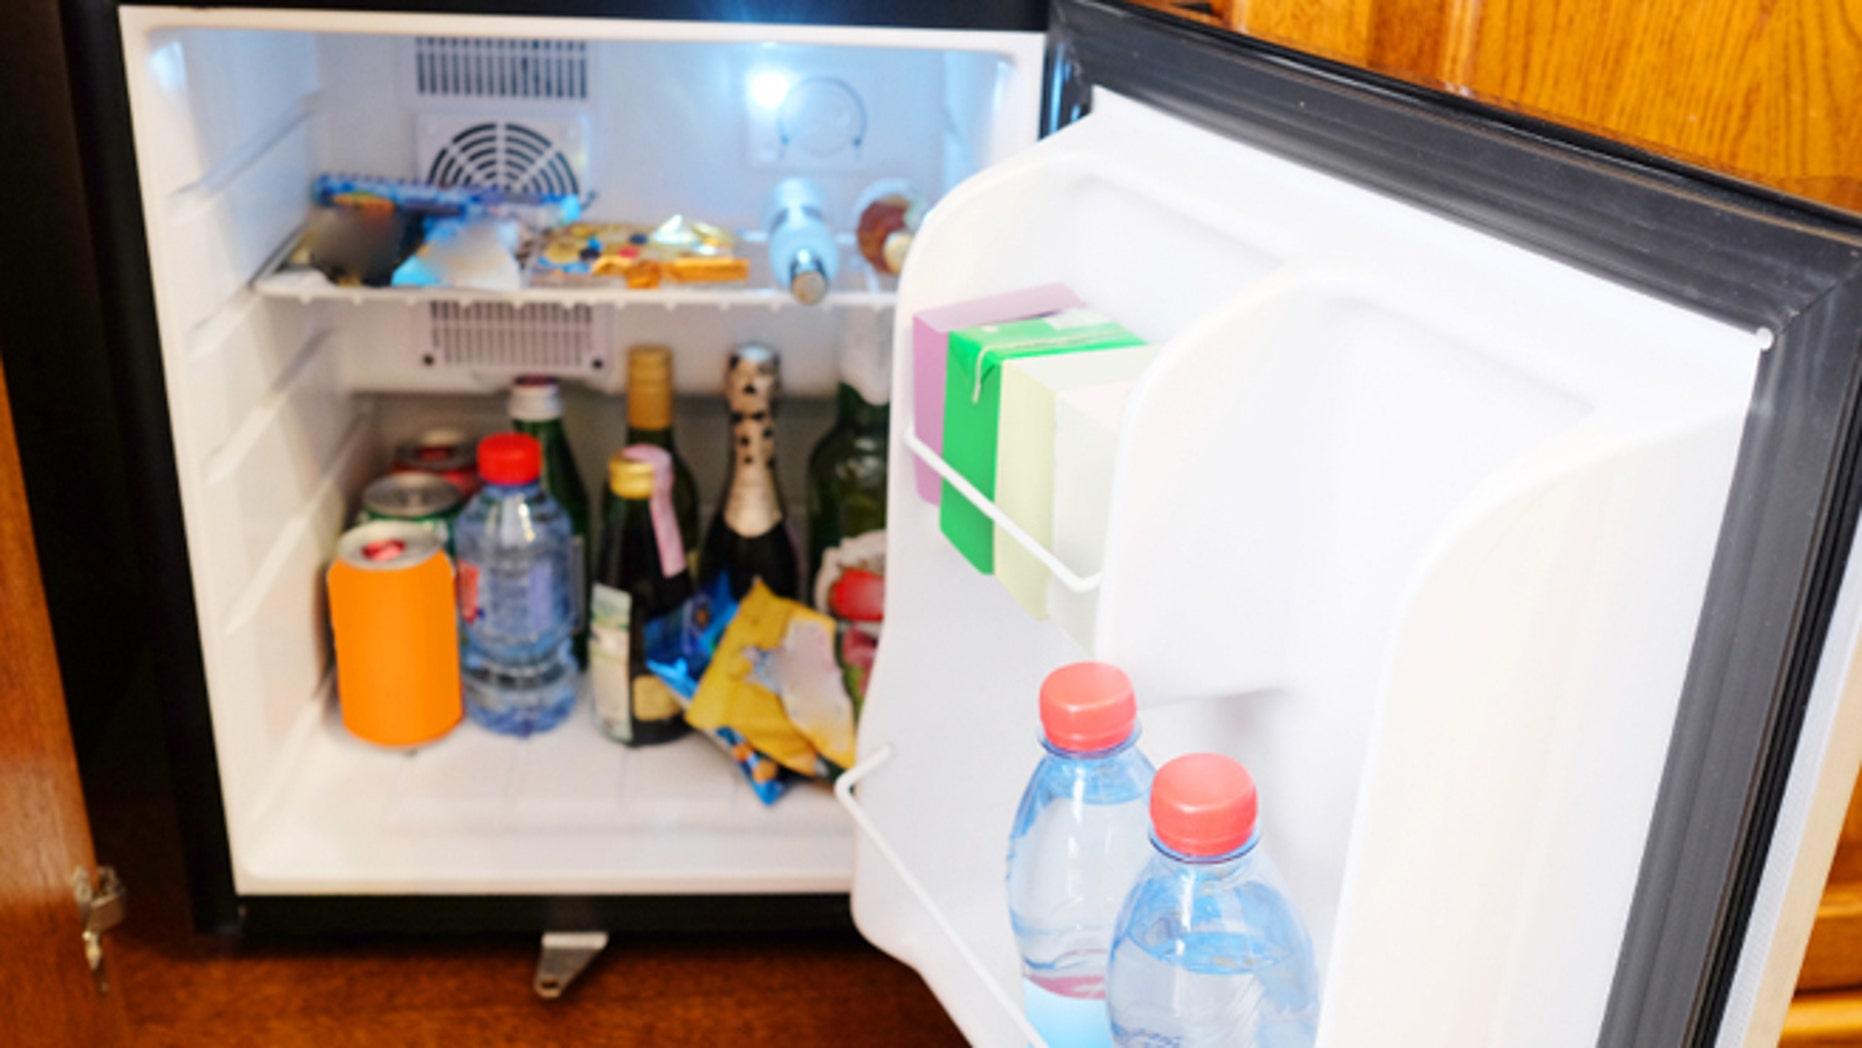 The once lucrative hotel mini-bar may be on its way out.